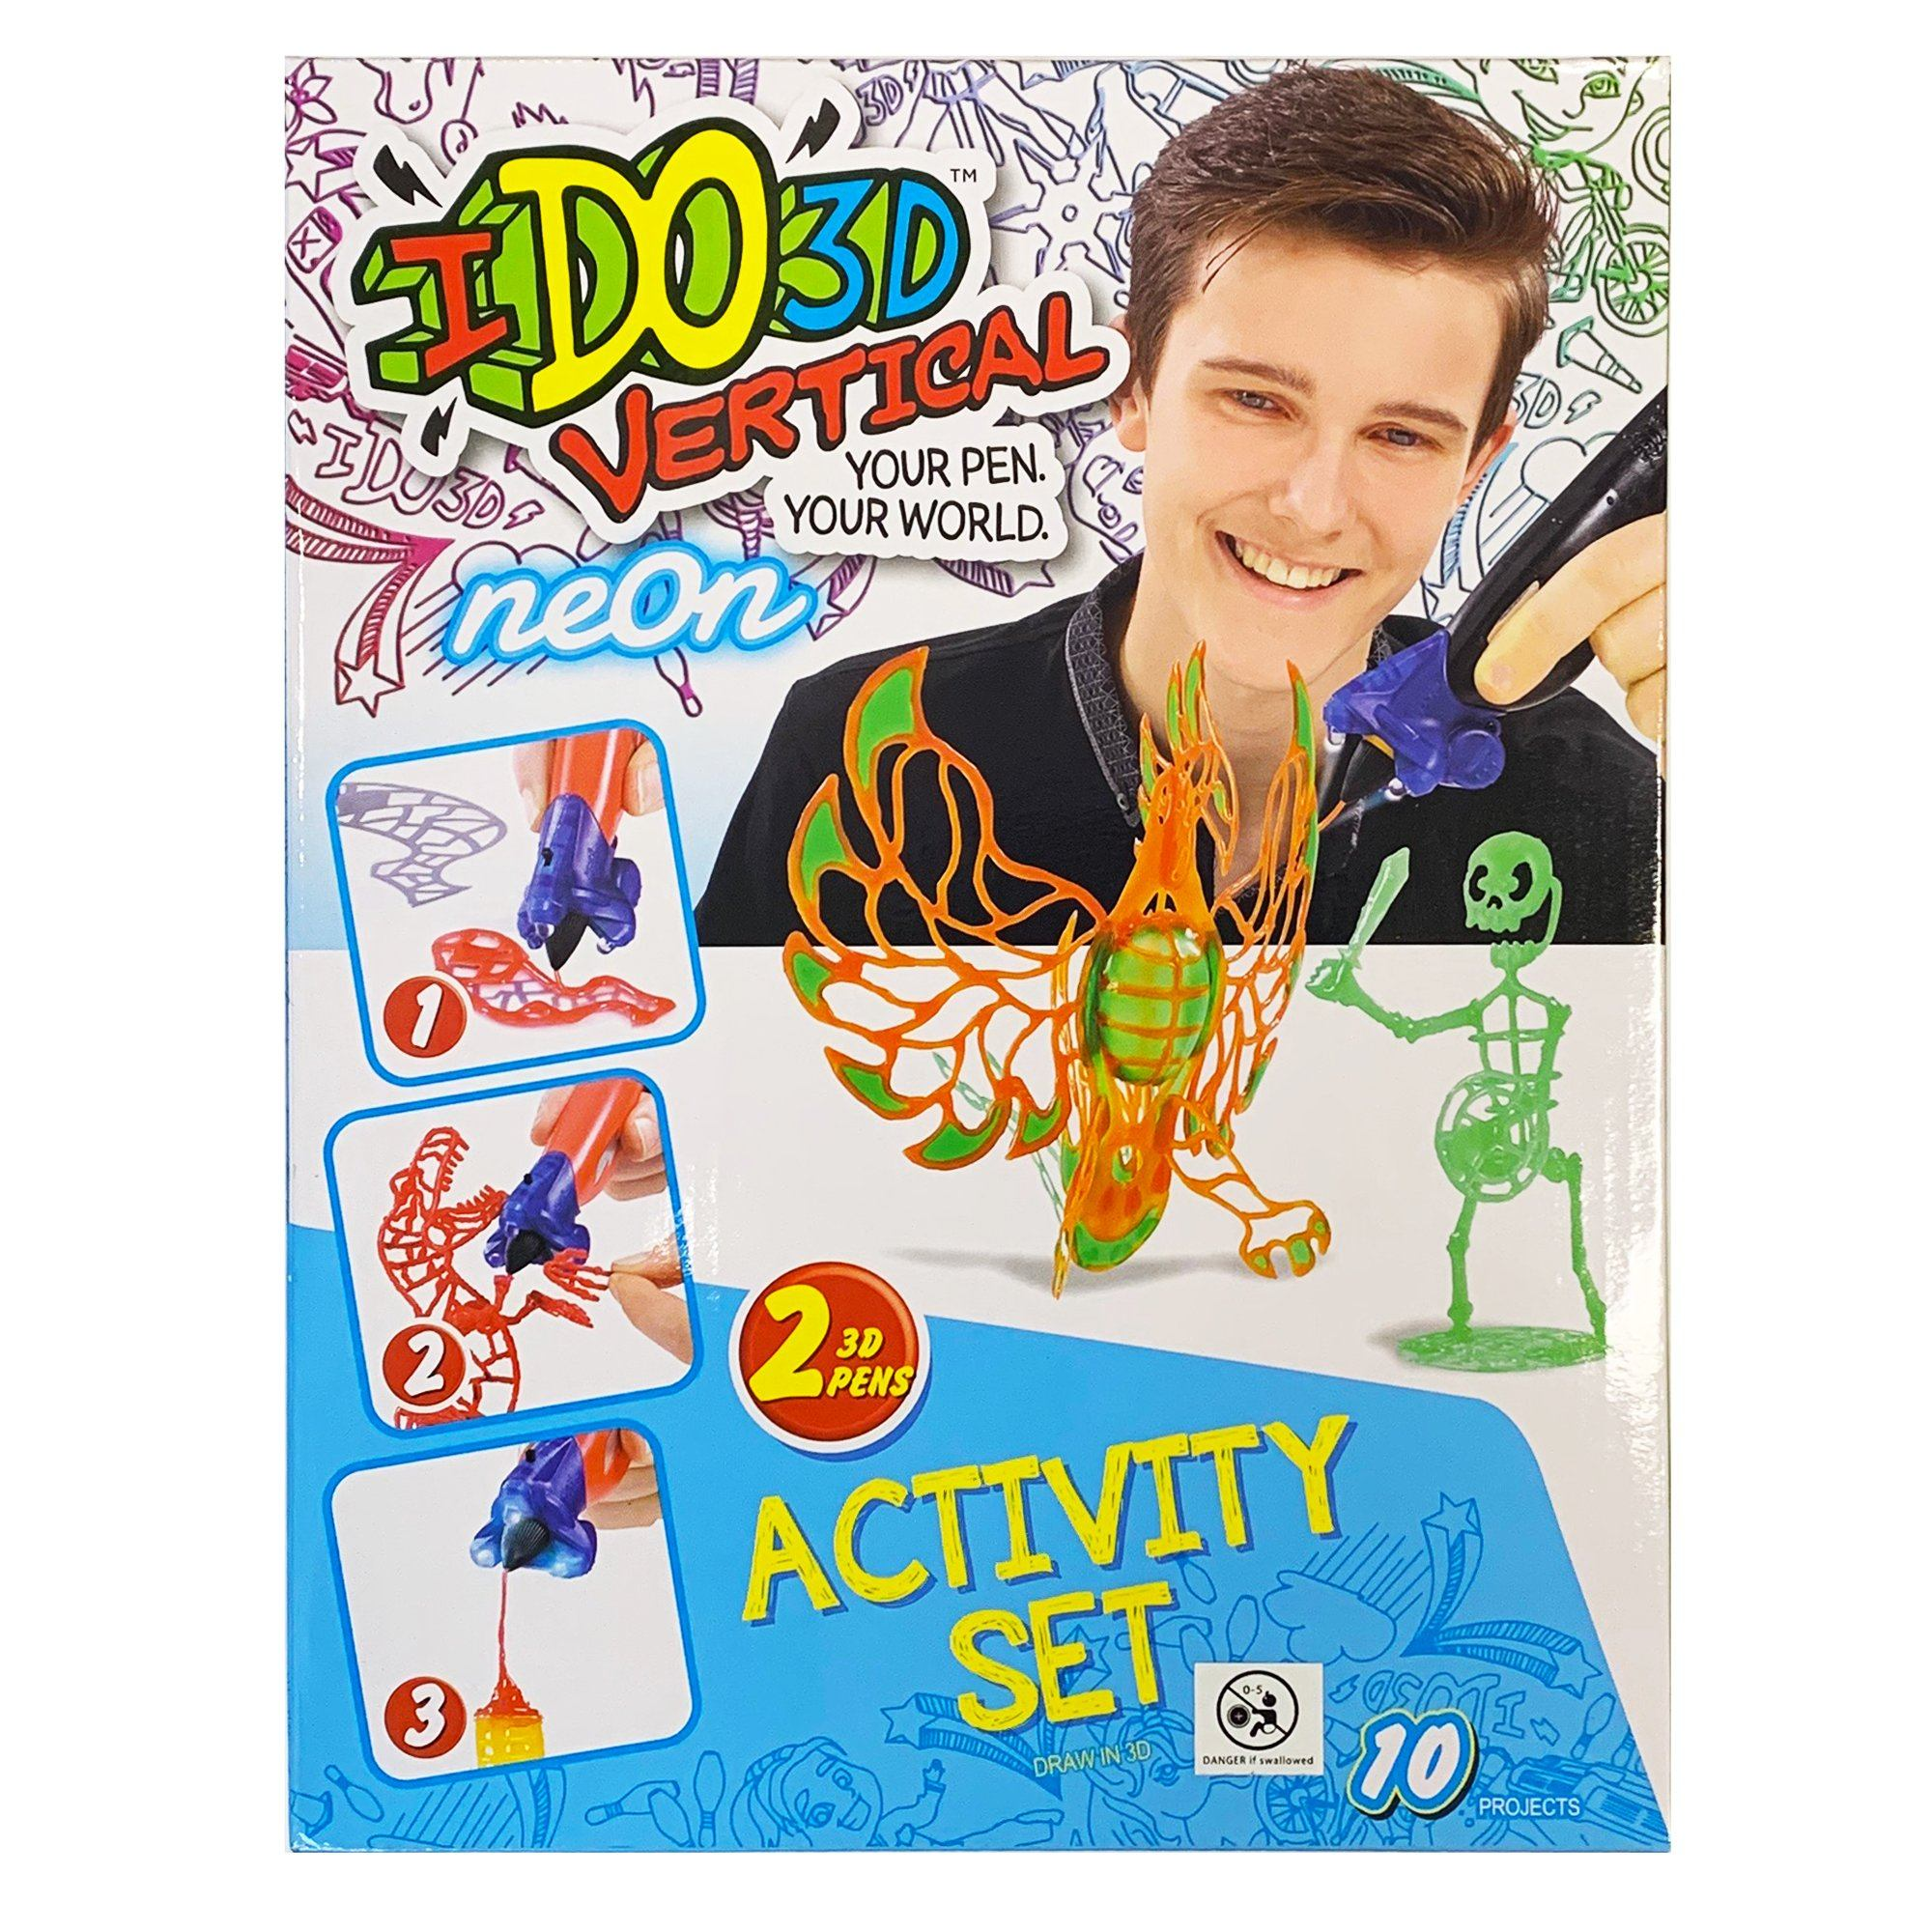 Ido3d Vertical Pen Set - Neon Orange Toys Ido3d